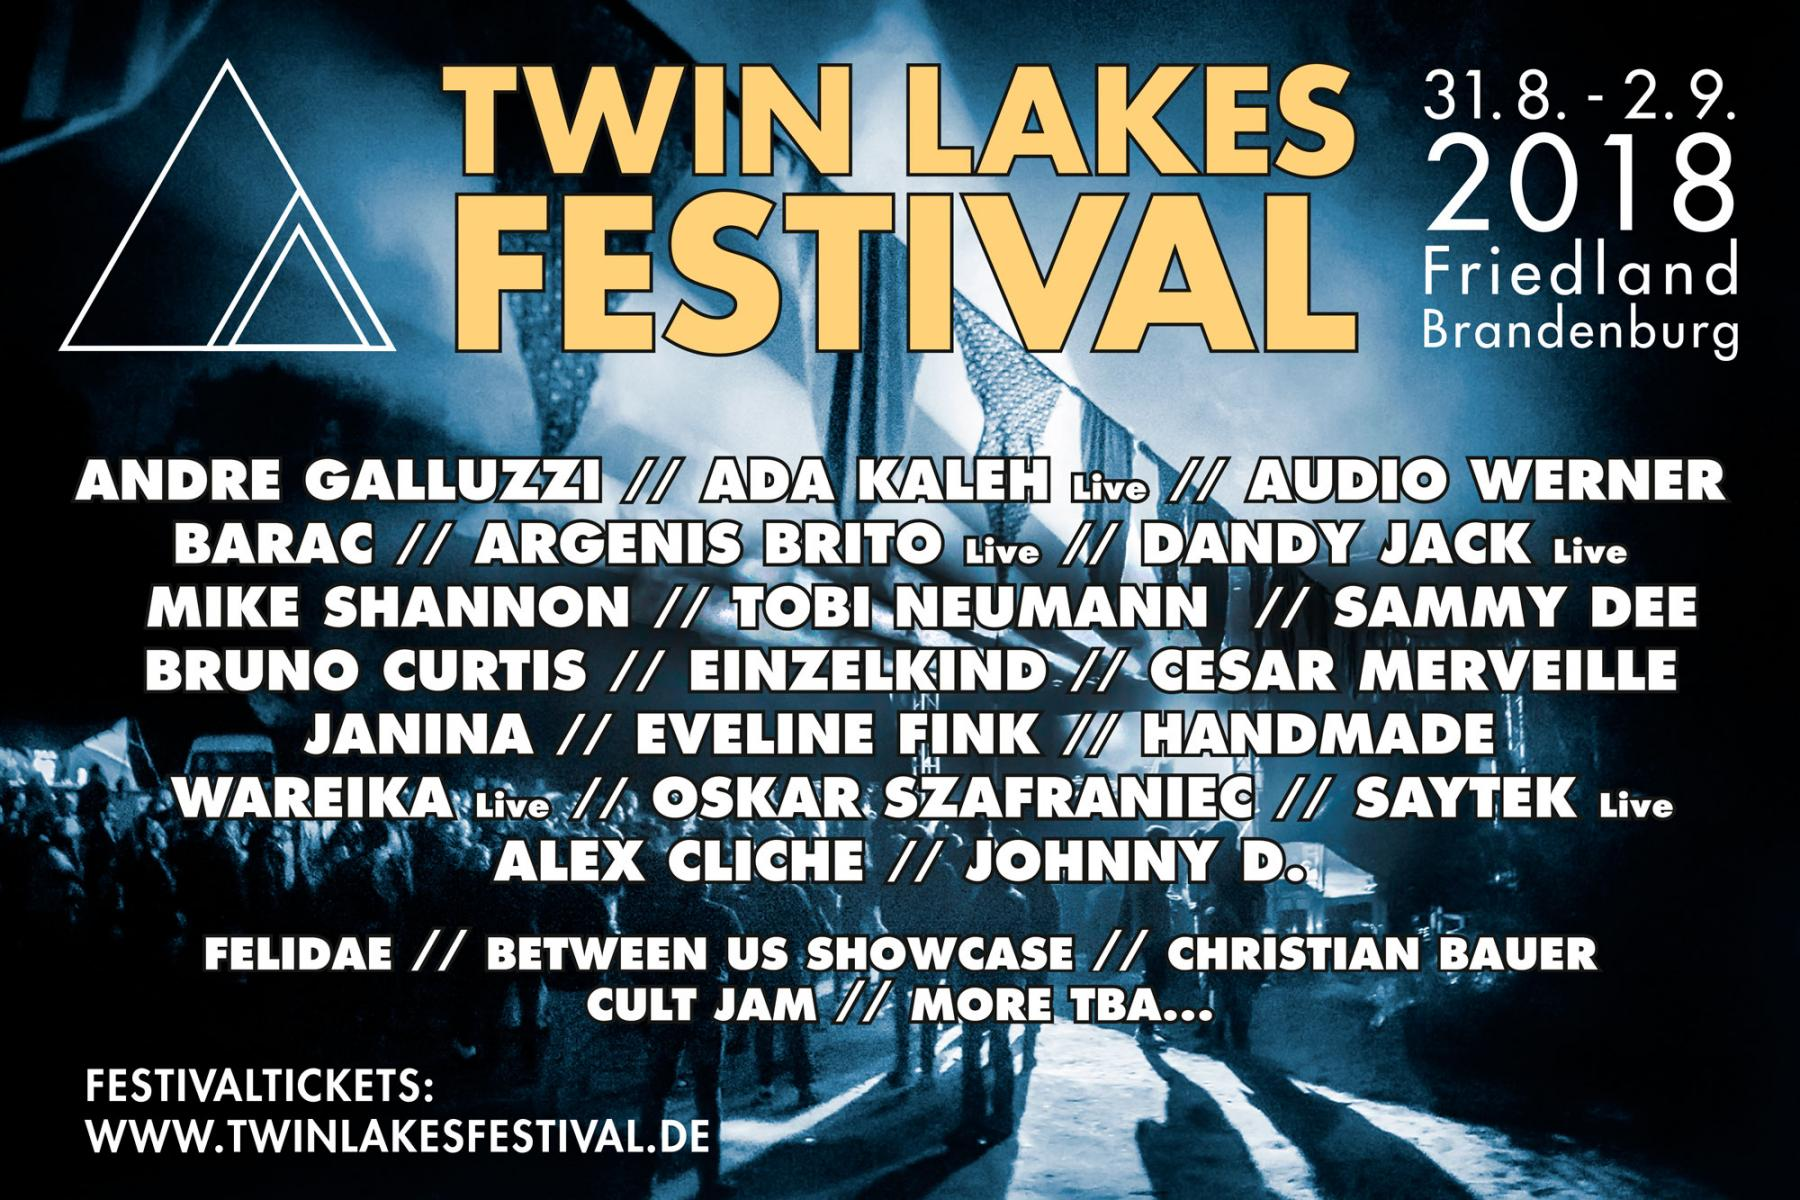 Twin Lakes Festival 2018 Line Up